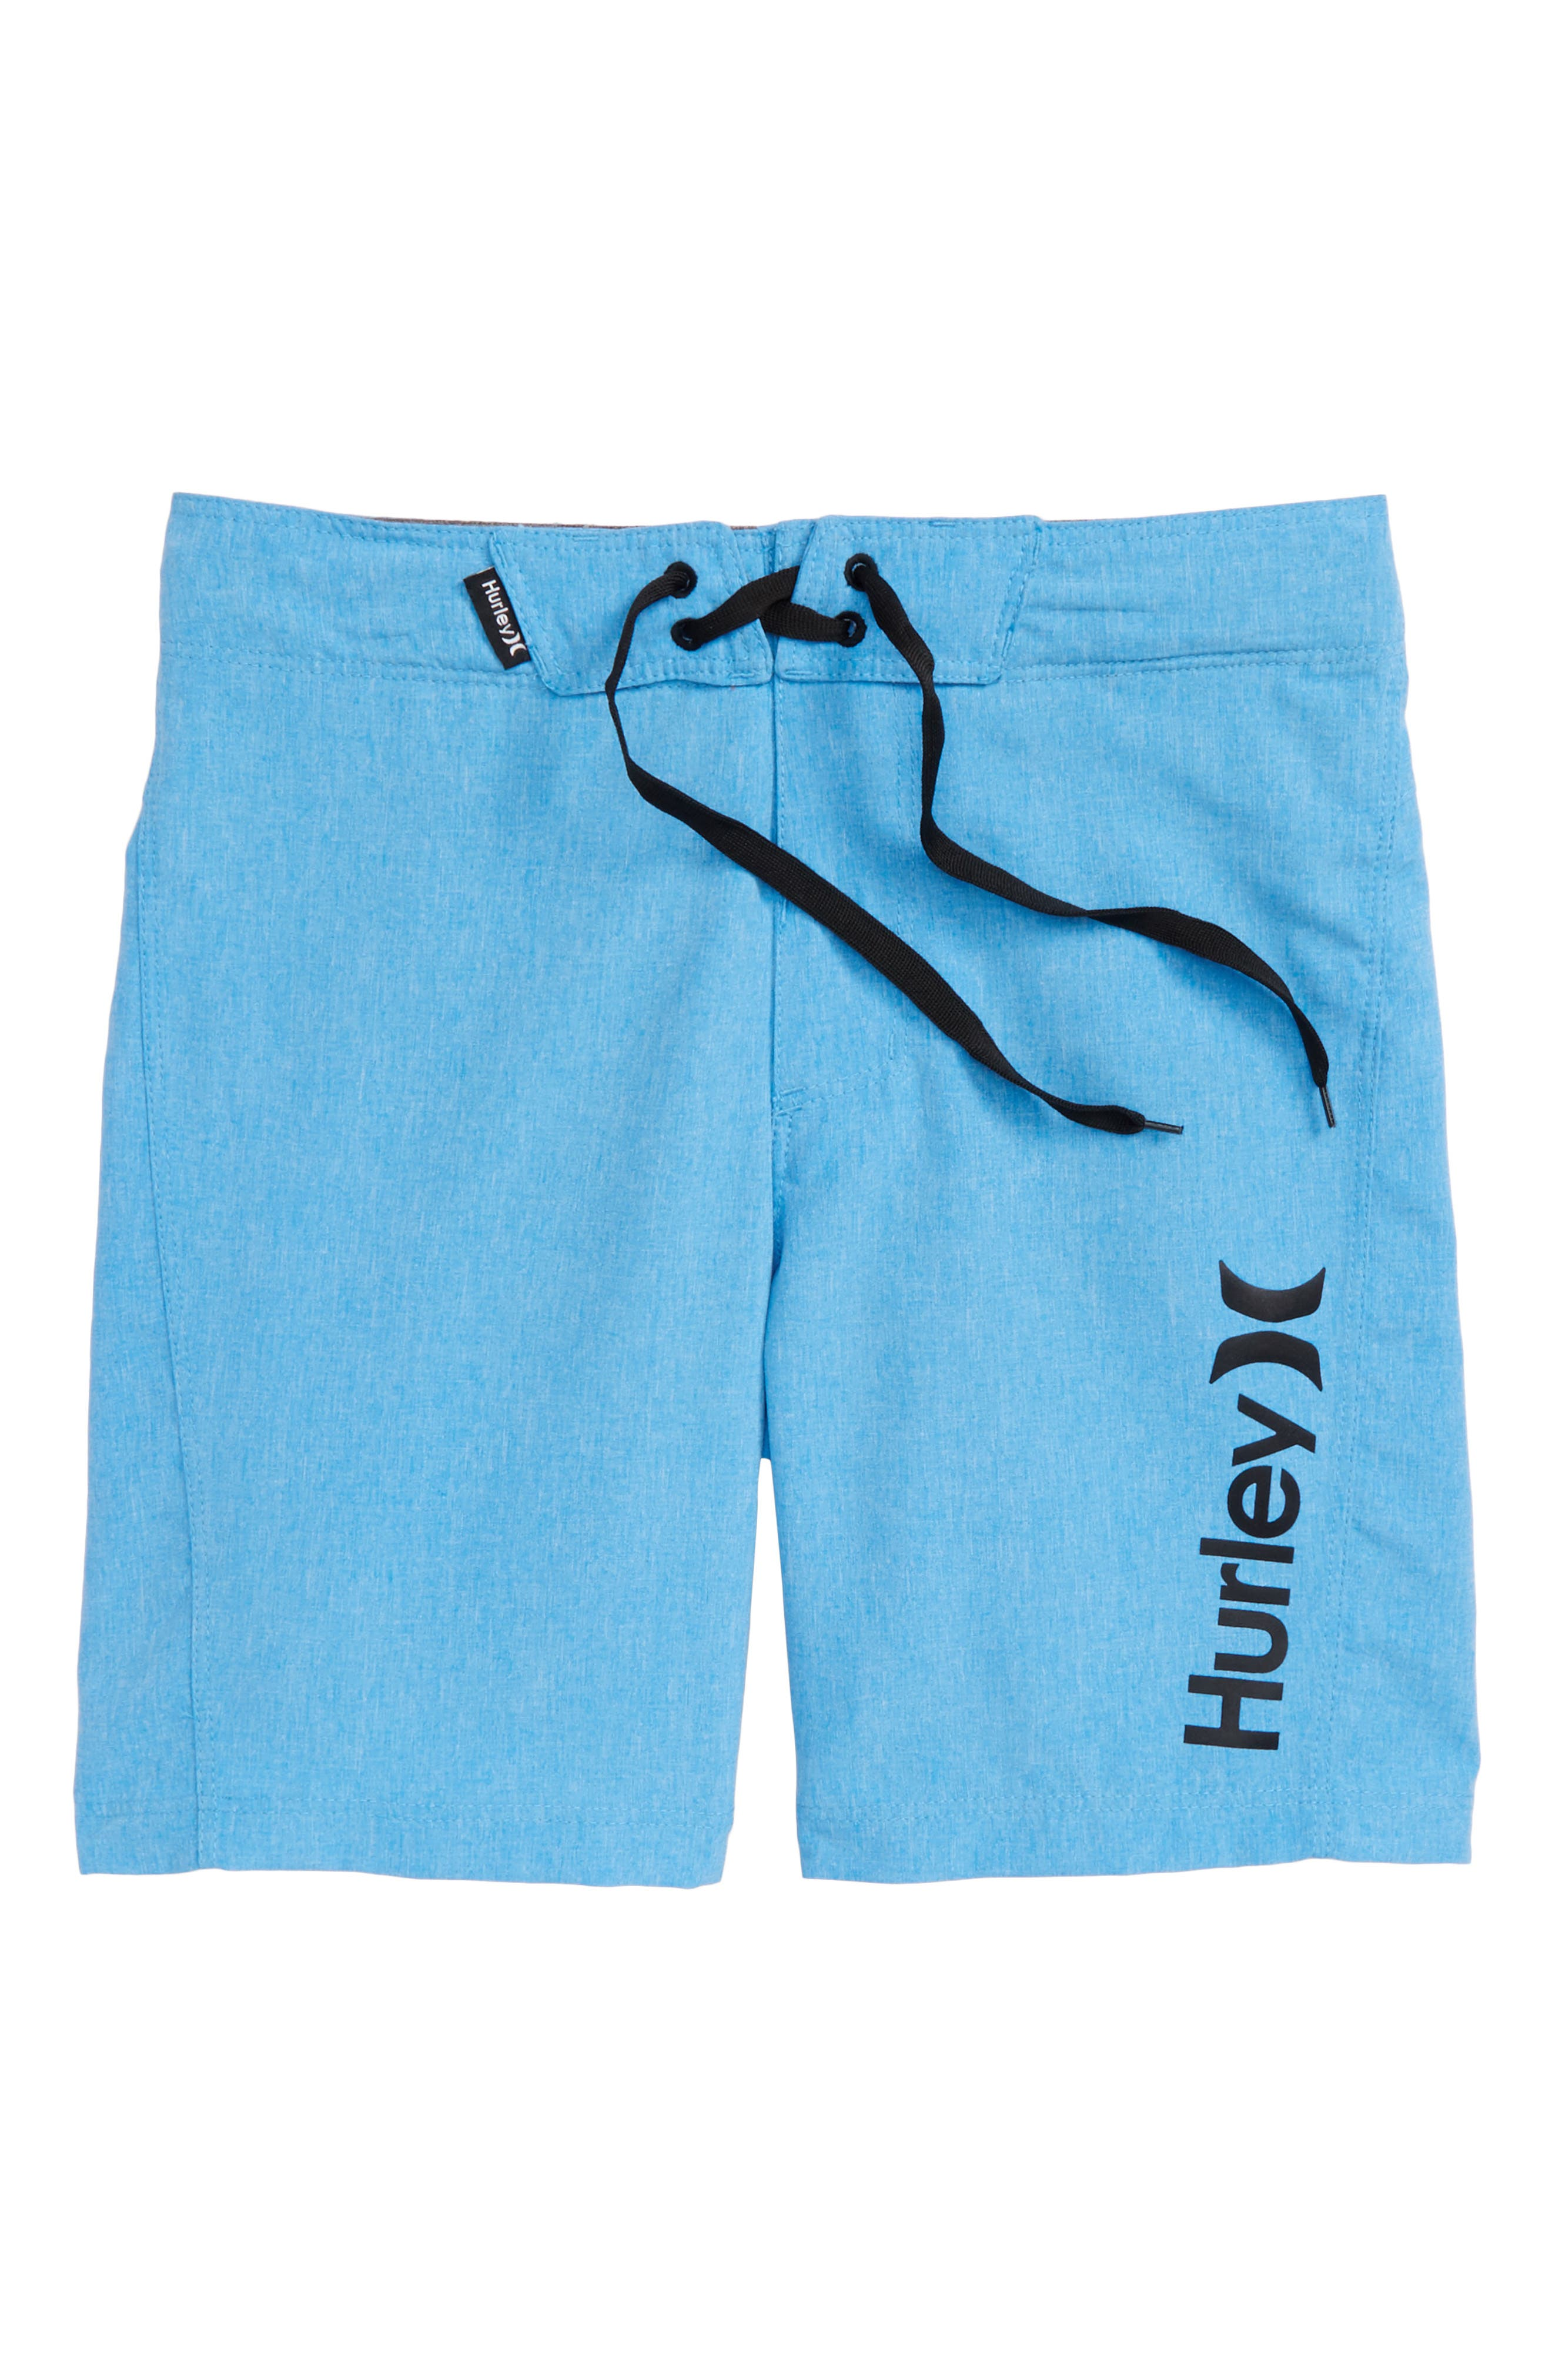 One and Only Dri-FIT Board Shorts,                             Main thumbnail 1, color,                             431